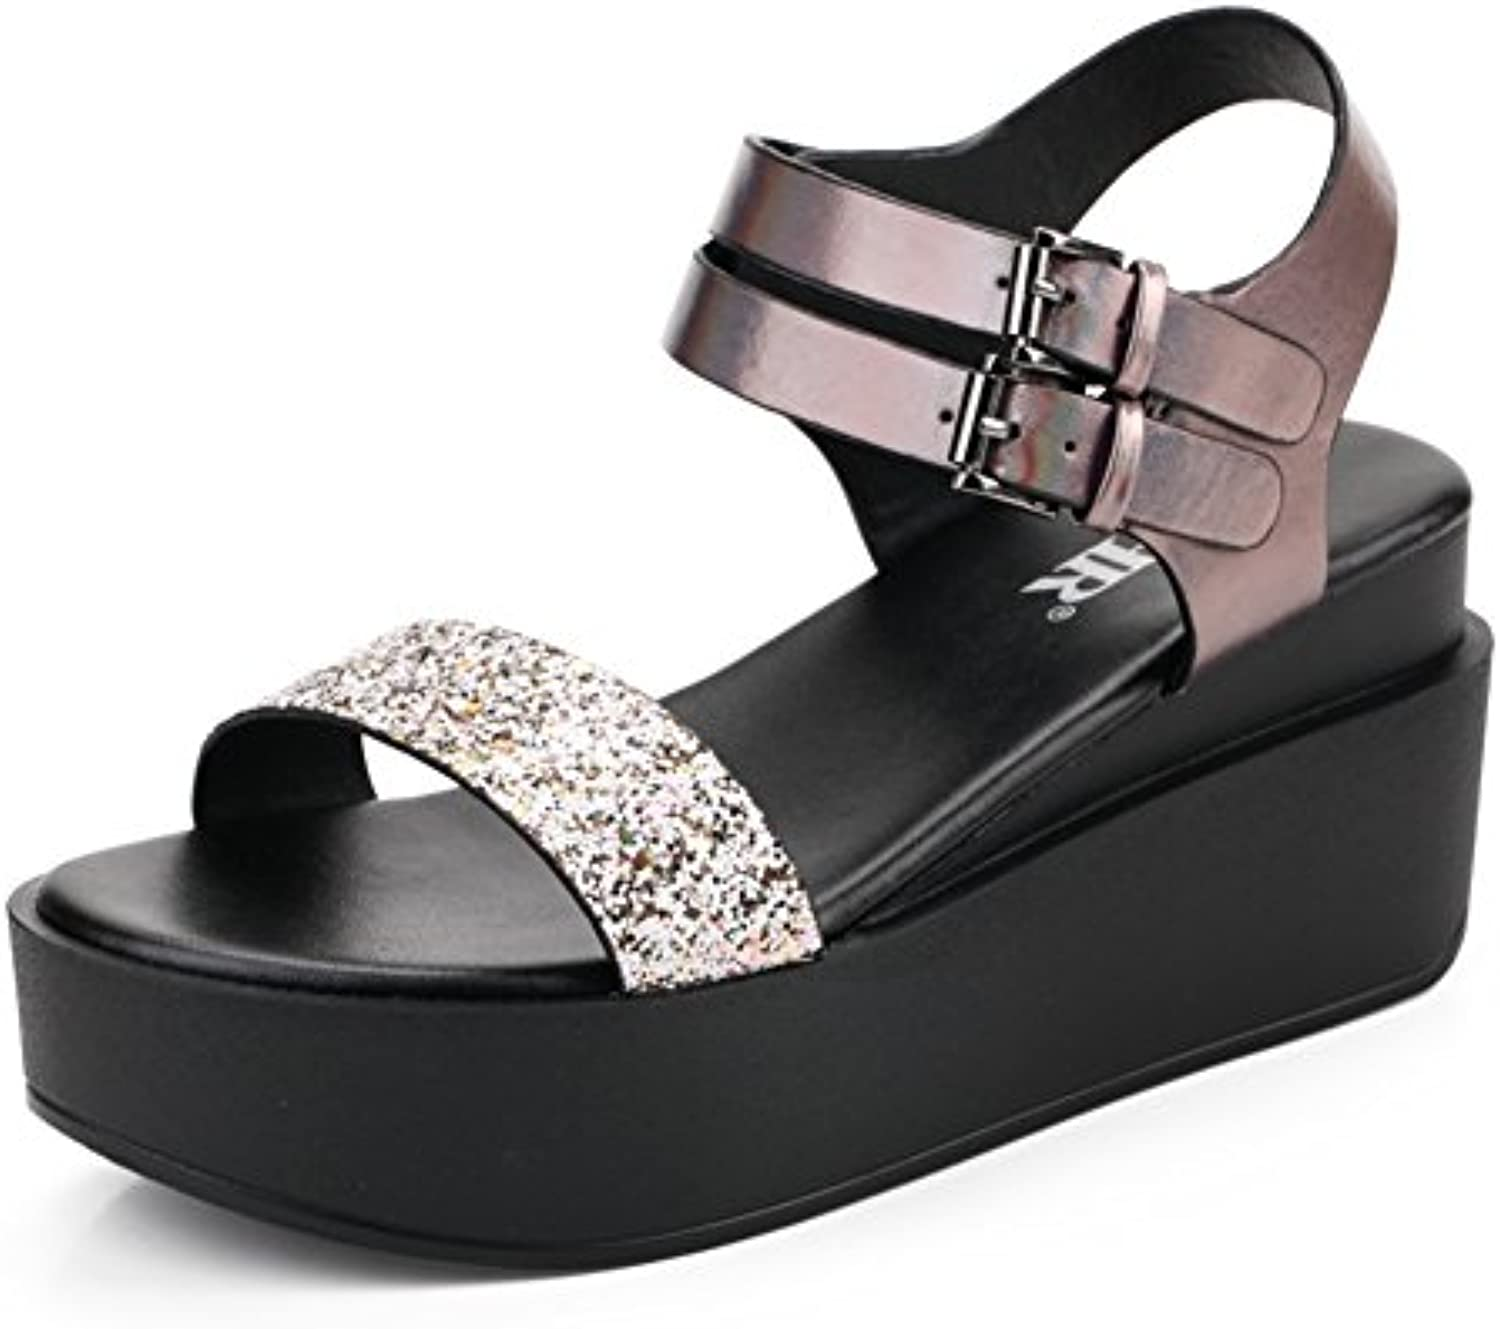 a80feceacb7d Muffins Thick-soled Sandals In The Summer